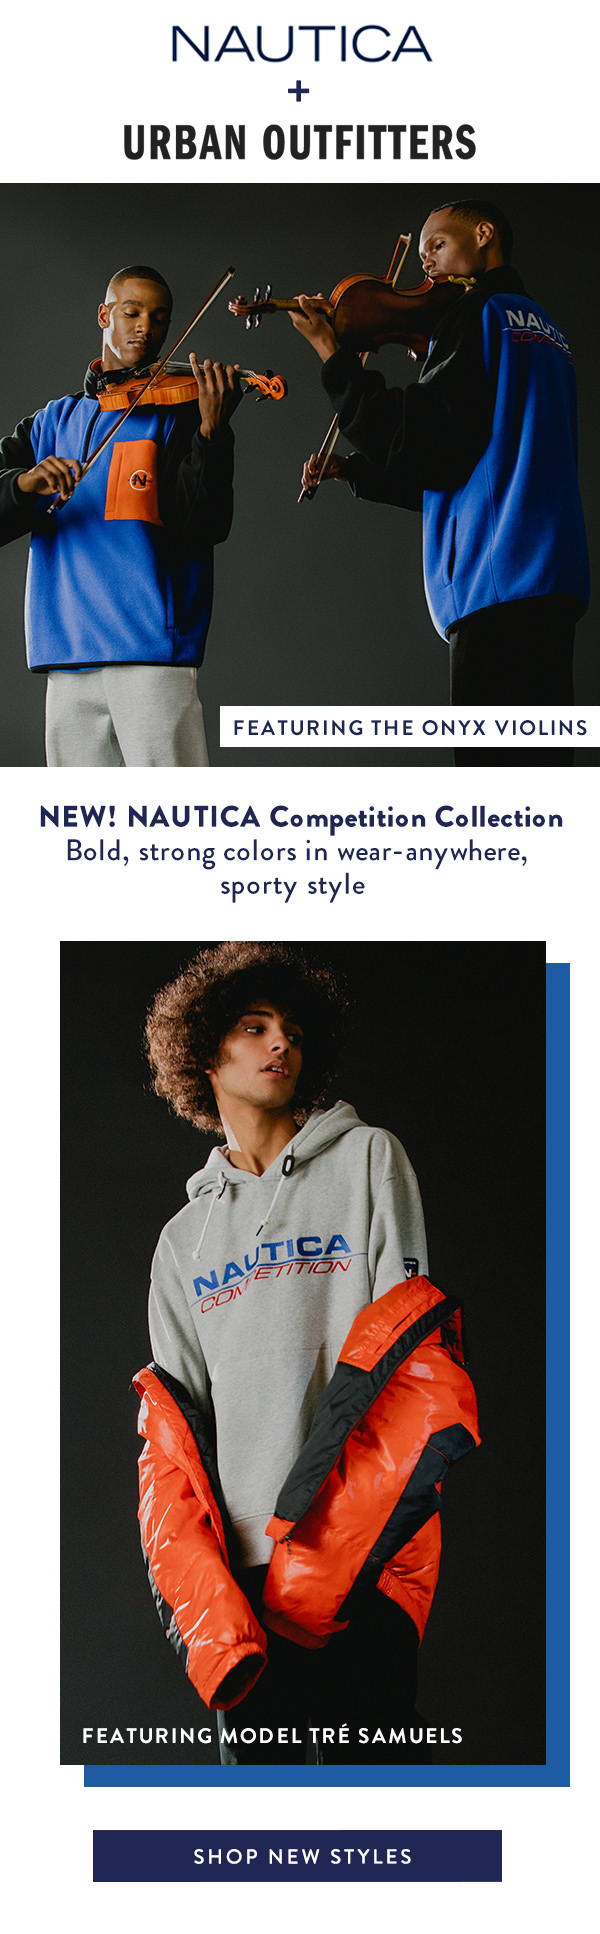 Nautica + Urban Outfitter / Email Marketing